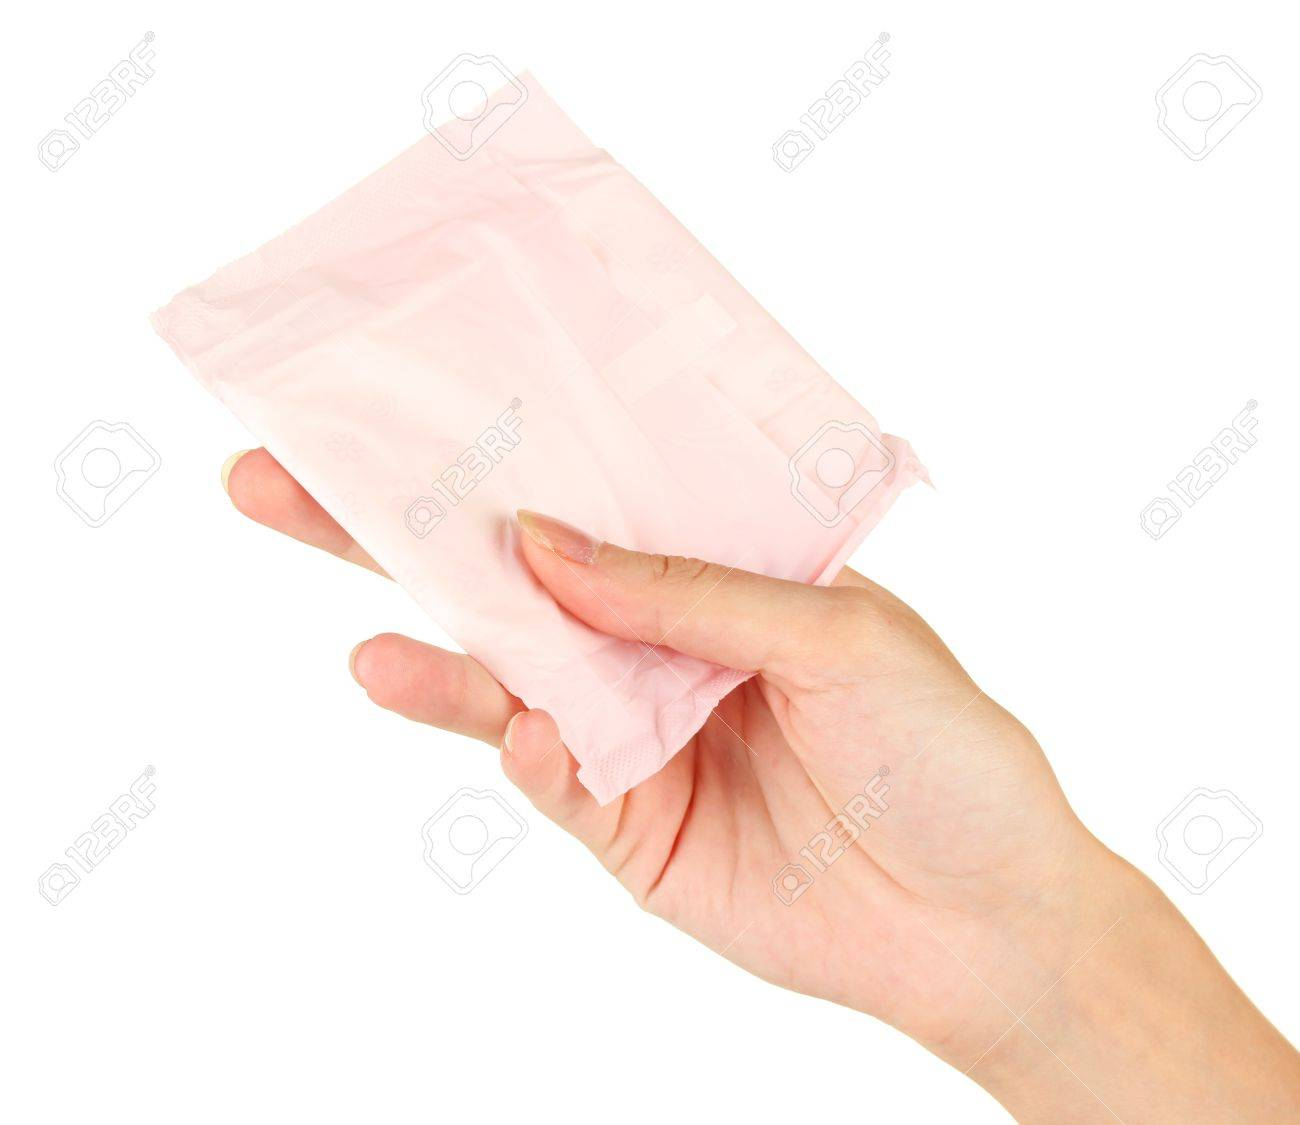 woman's hand holding a panty liner in individual packing on white background close-up Stock Photo - 15736459